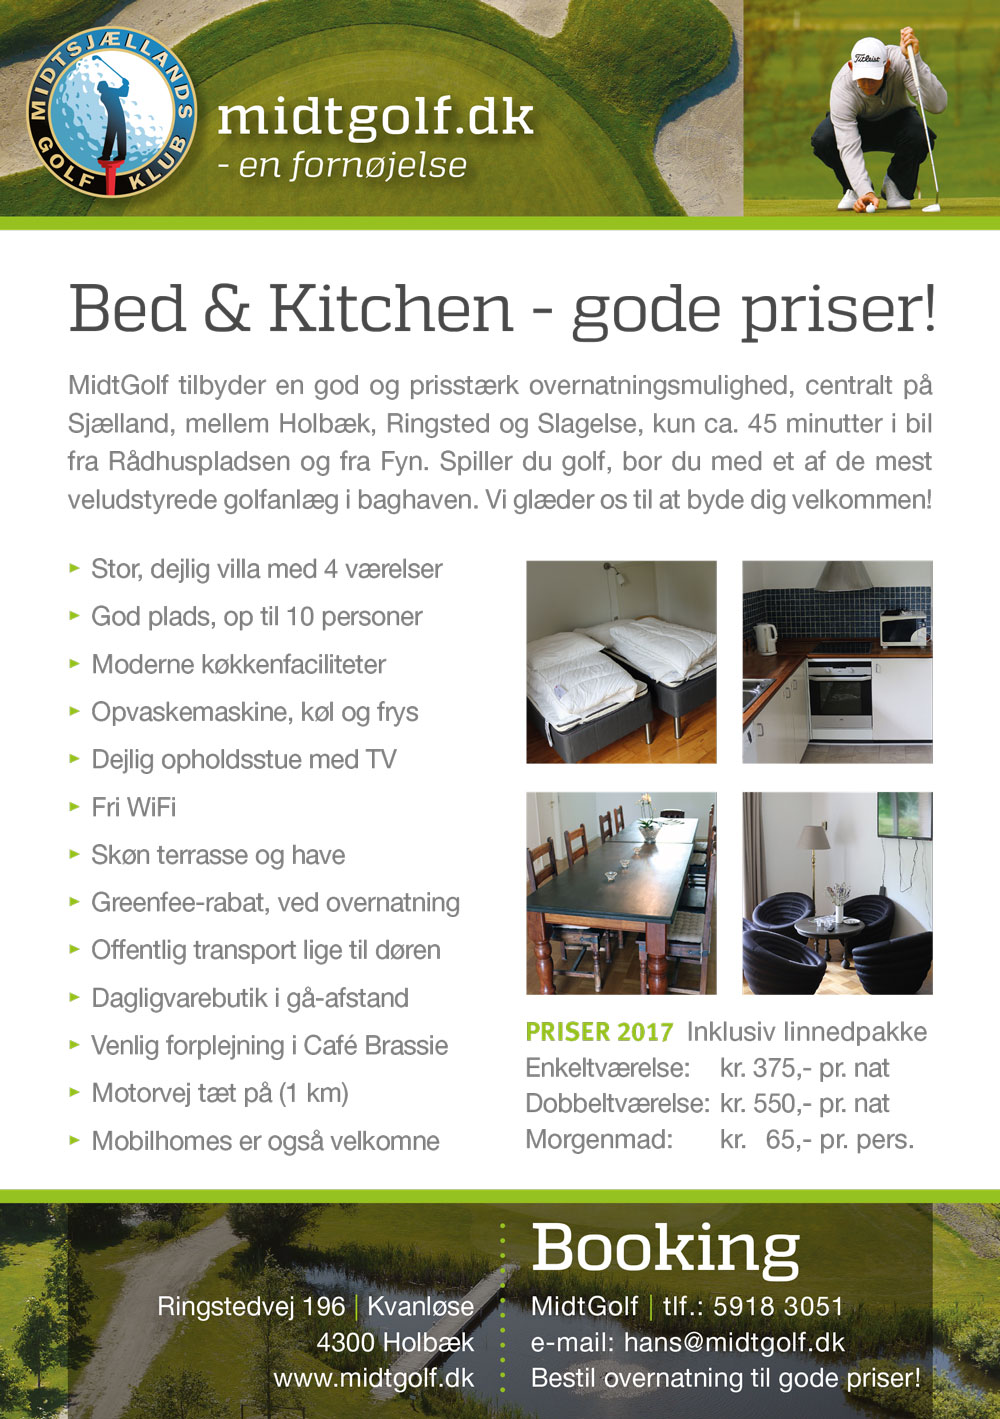 MidtGolf A5 flyer 01 2017 bed-and-kitchen 001